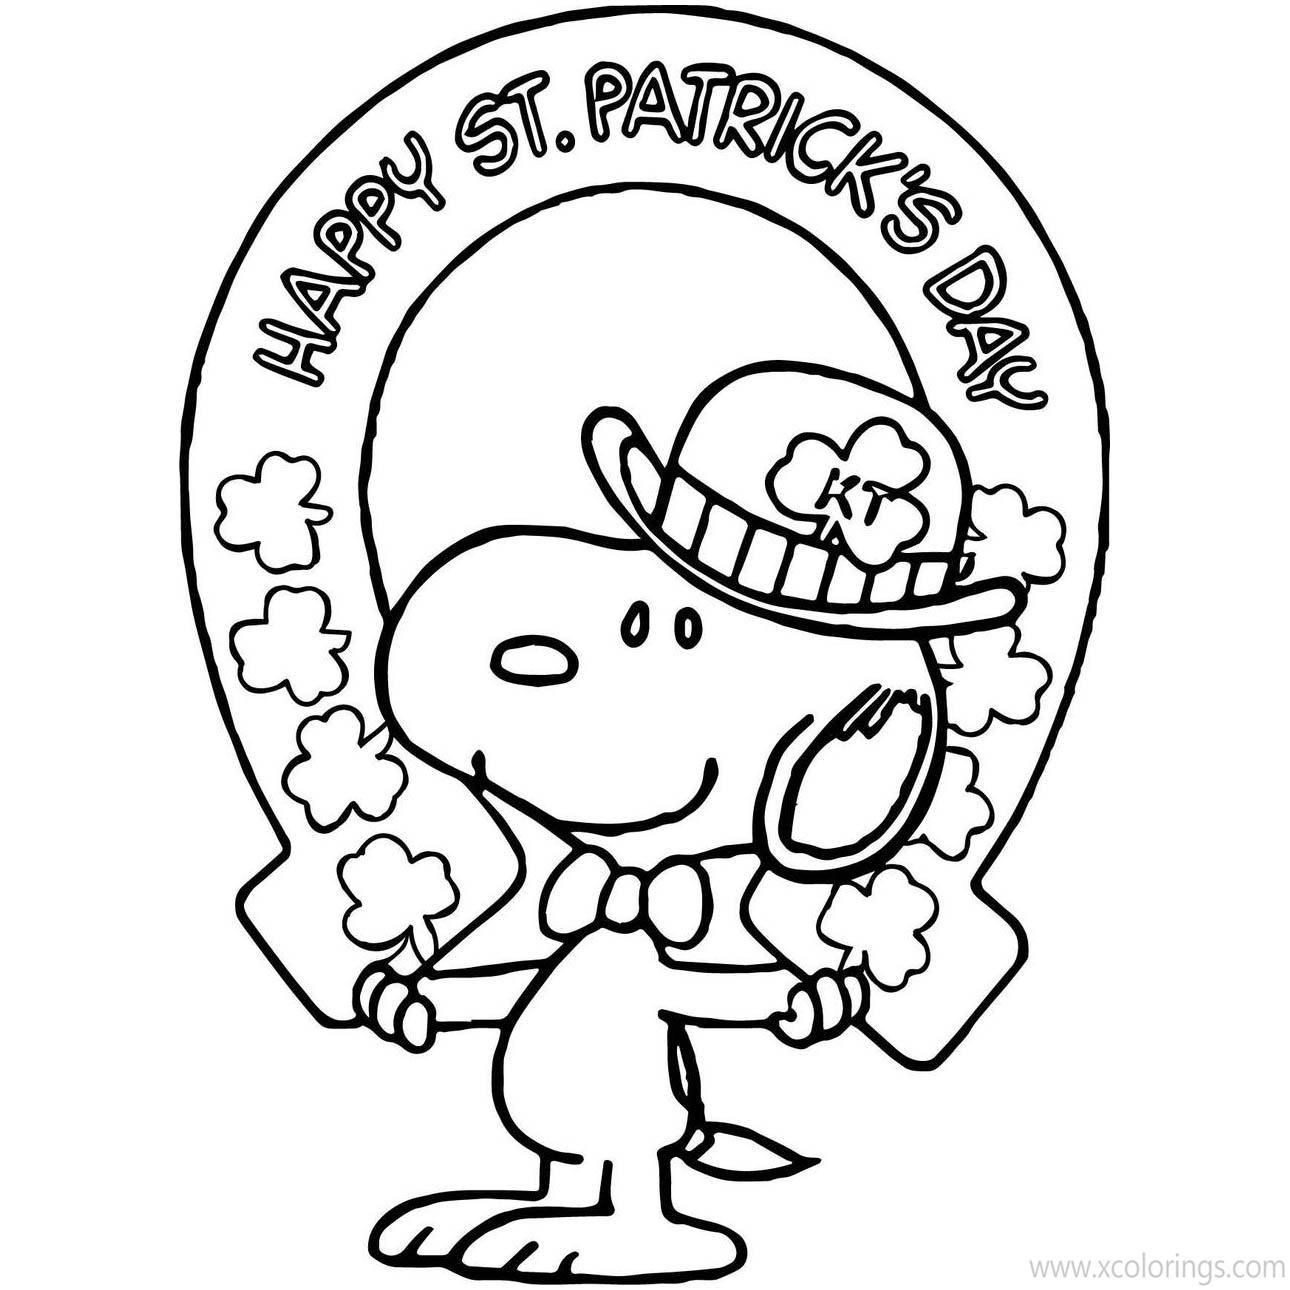 St Patrick S Day Coloring Pages Snoopy With Shamrock Xcolorings Com